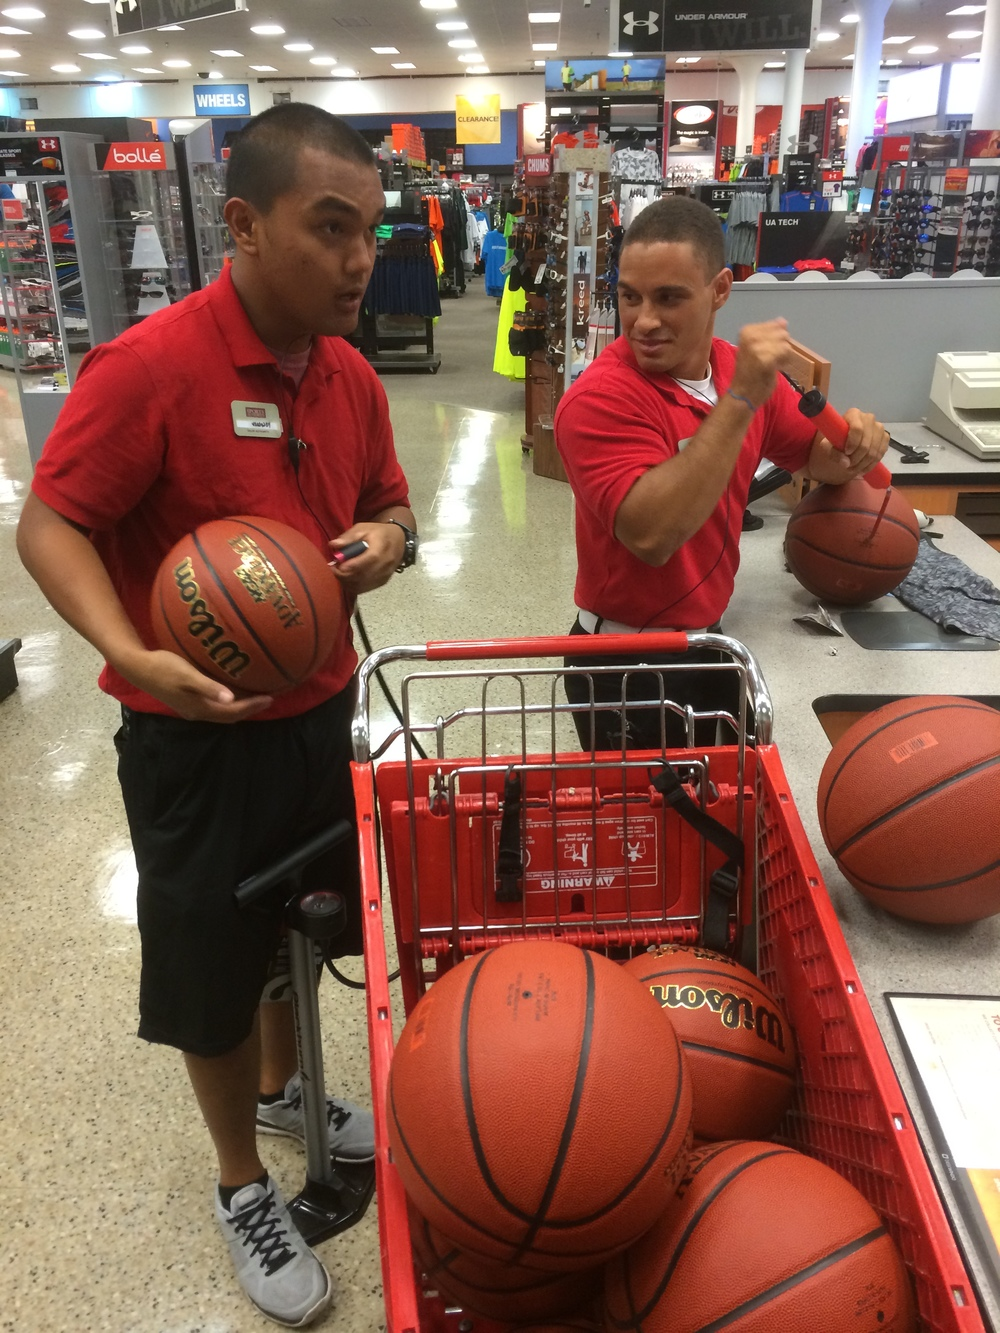 Buying Basketballs 2014 7.jpg